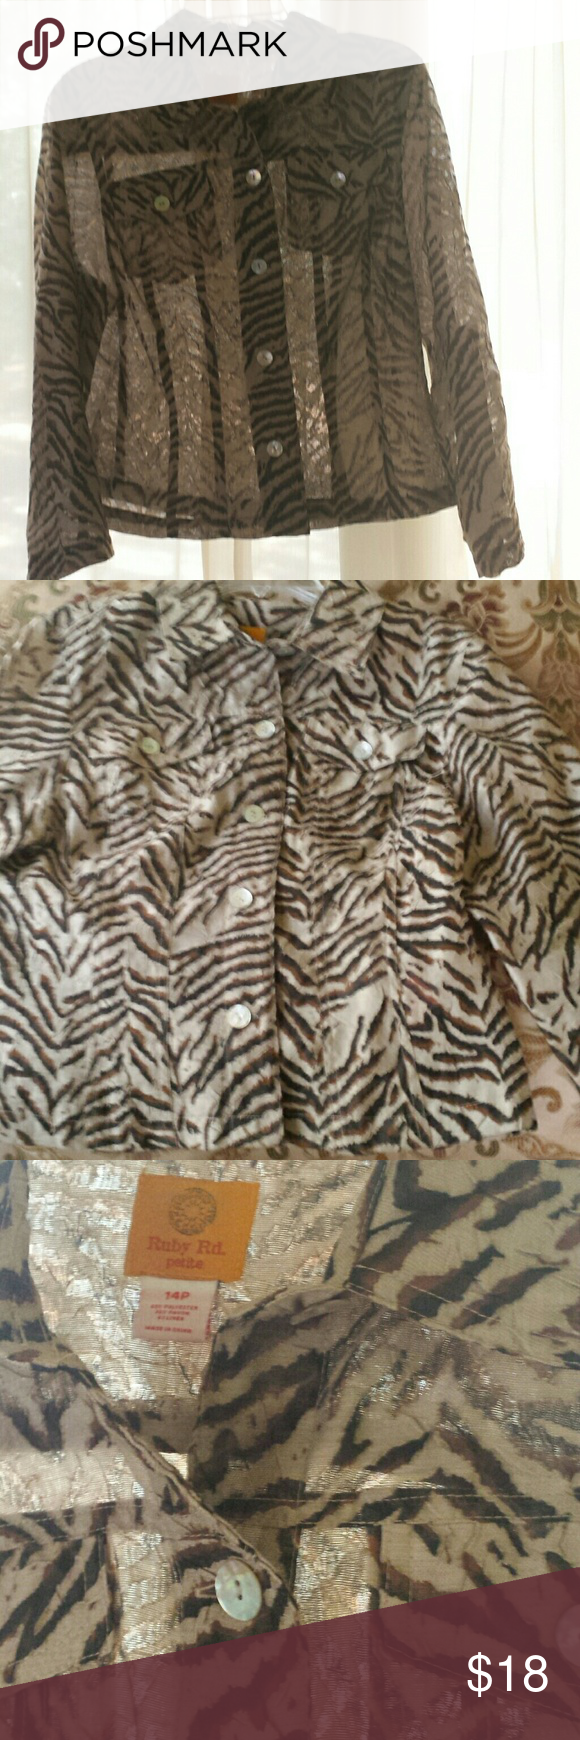 Ruby Rd Animal Print Sheer Blouse. Size 14P Very nice sheer button down blouse in animal print by Ruby Rd. In excellent used condition. No holes, stains, or flaws. Sleeves can be rolled and buttoned to make them 3/4 length.  So cute with a black or tan cami under it, worn with jeans or slacks and boots, or a skirt and heels. Great for work and play. Size 14 Petite. Ruby Rd Tops Blouses